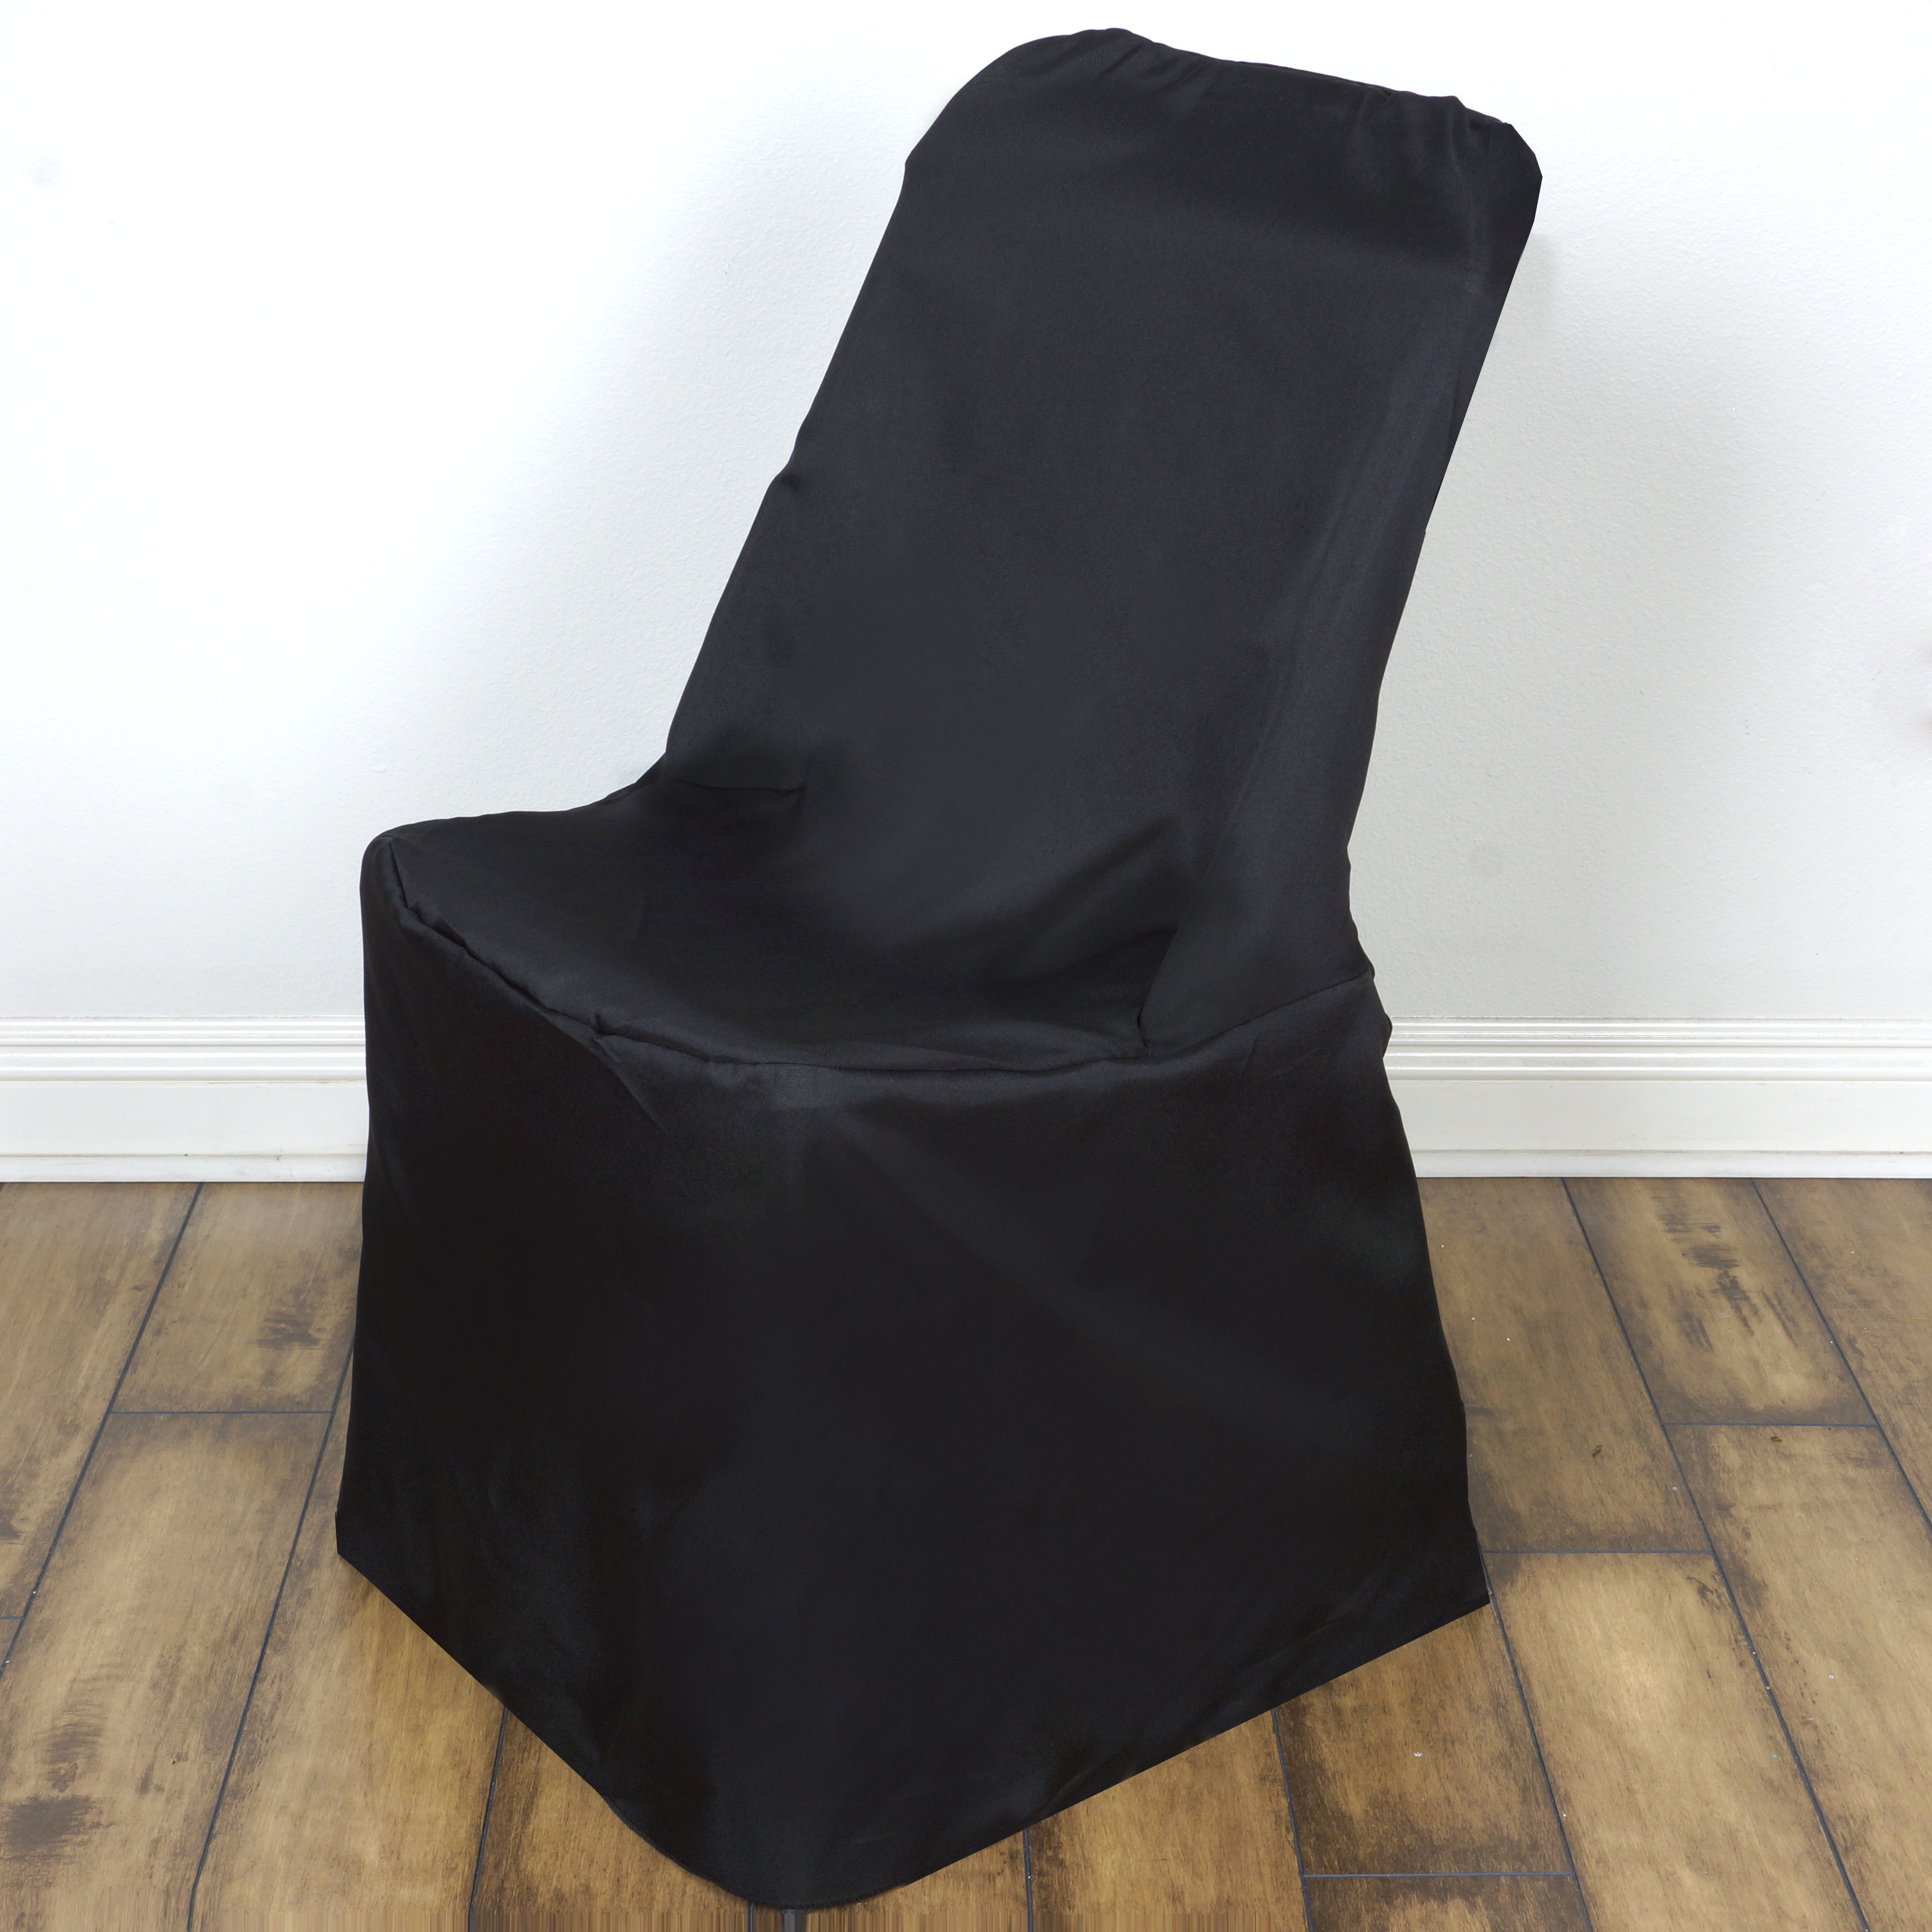 10 pcs LIFETIME Folding CHAIR COVERS Slipcovers Polyester